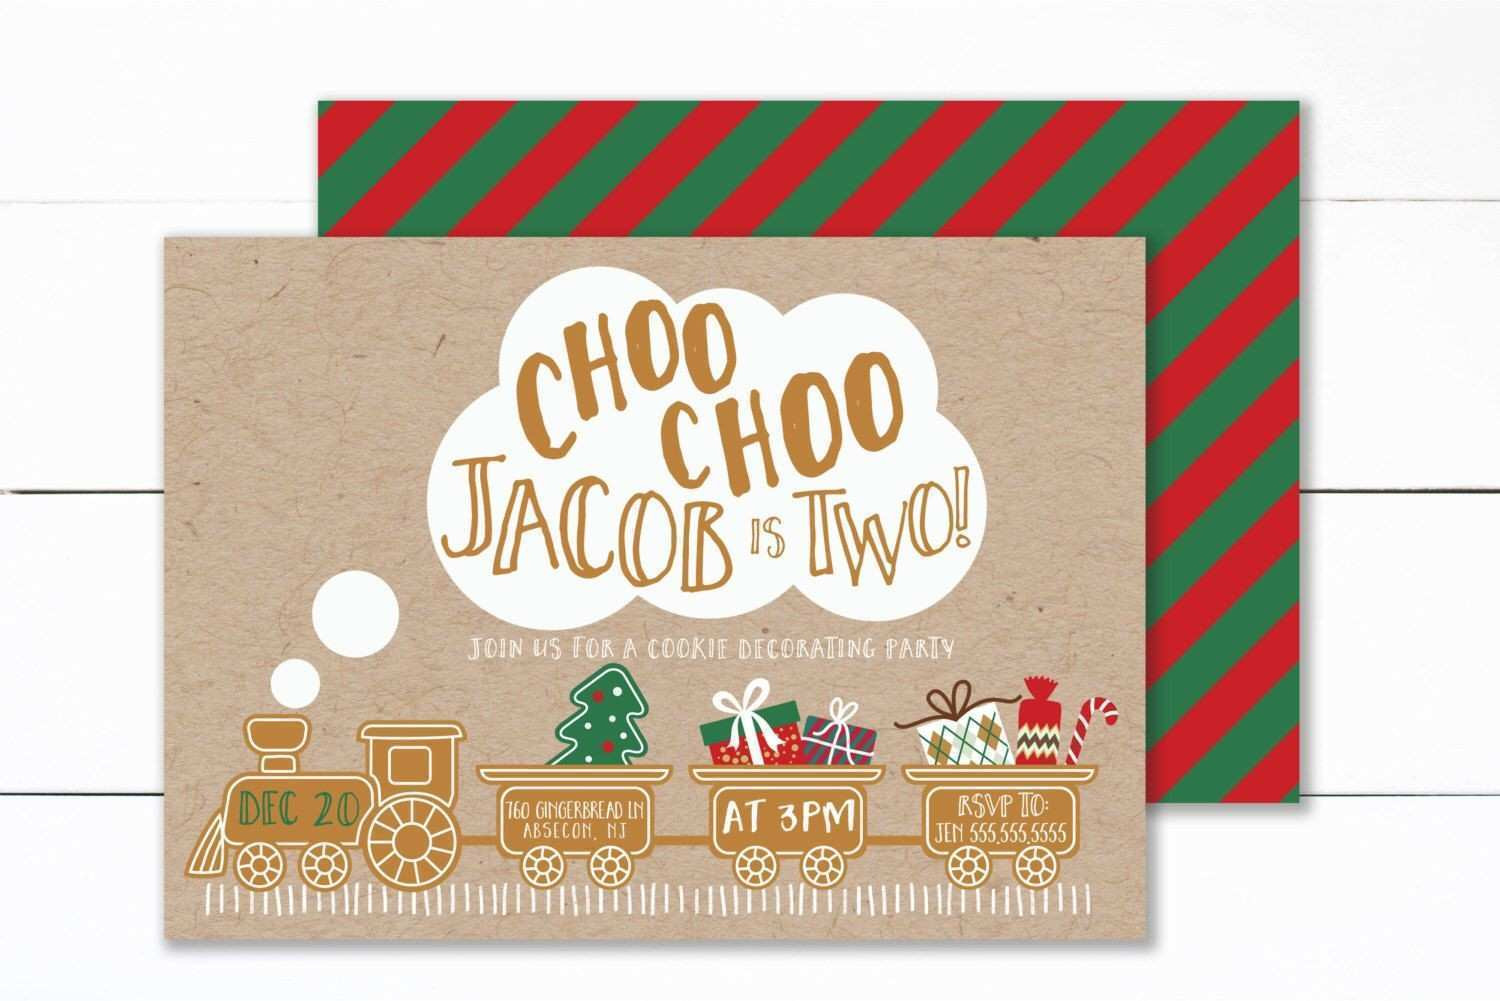 Best ideas about Costco Birthday Invitations . Save or Pin 15 Lovely Costco Birthday Invitations Now.